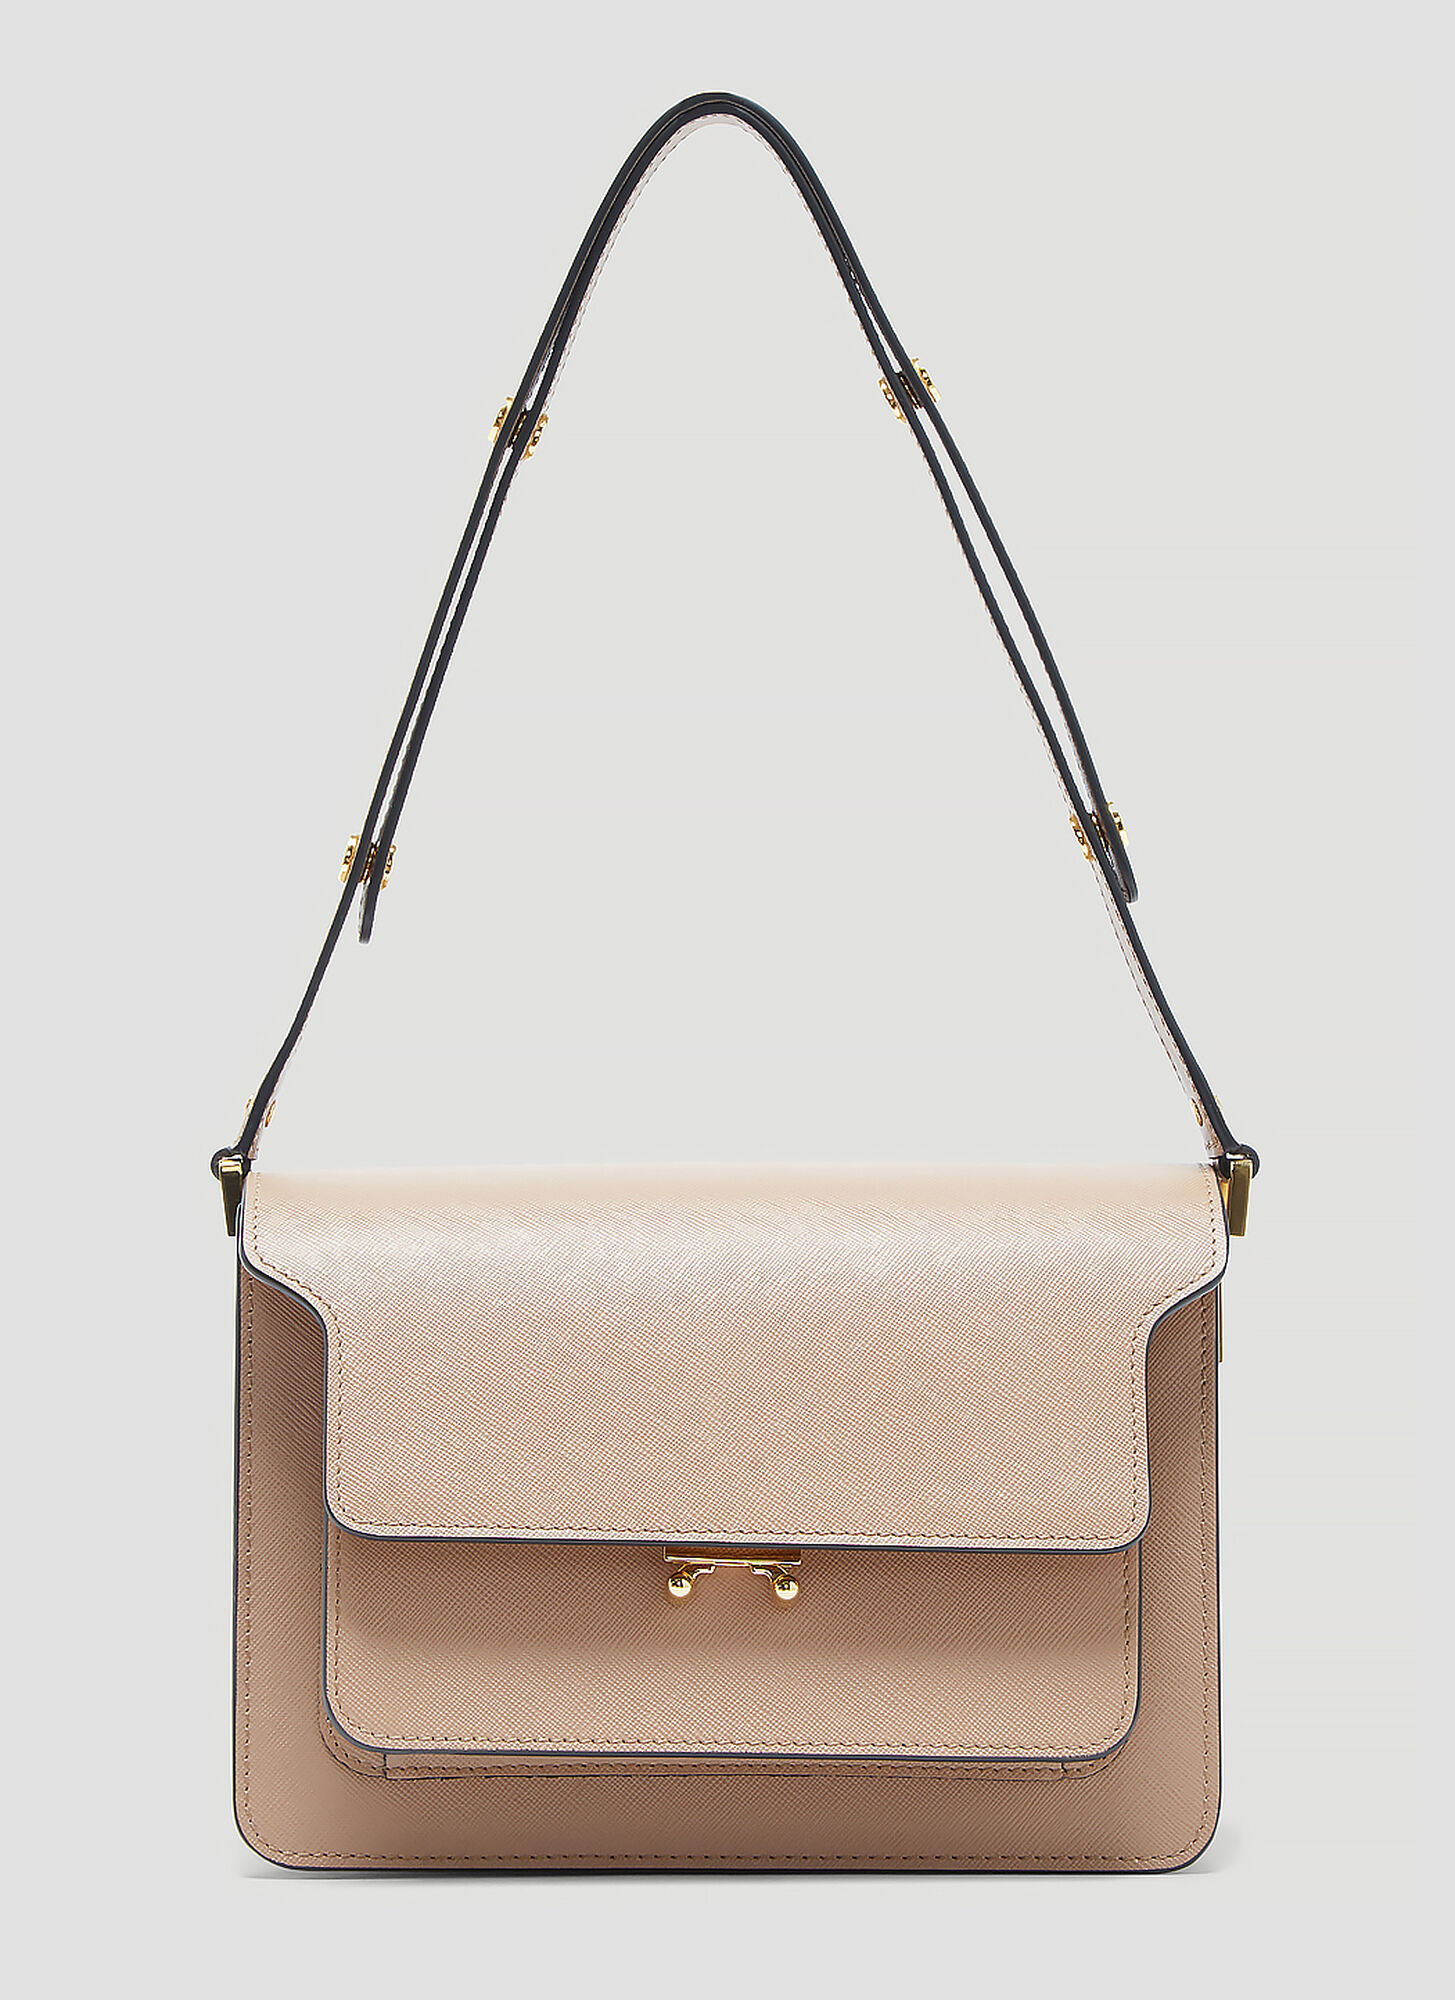 Marni Medium Trunk Bag in Brown